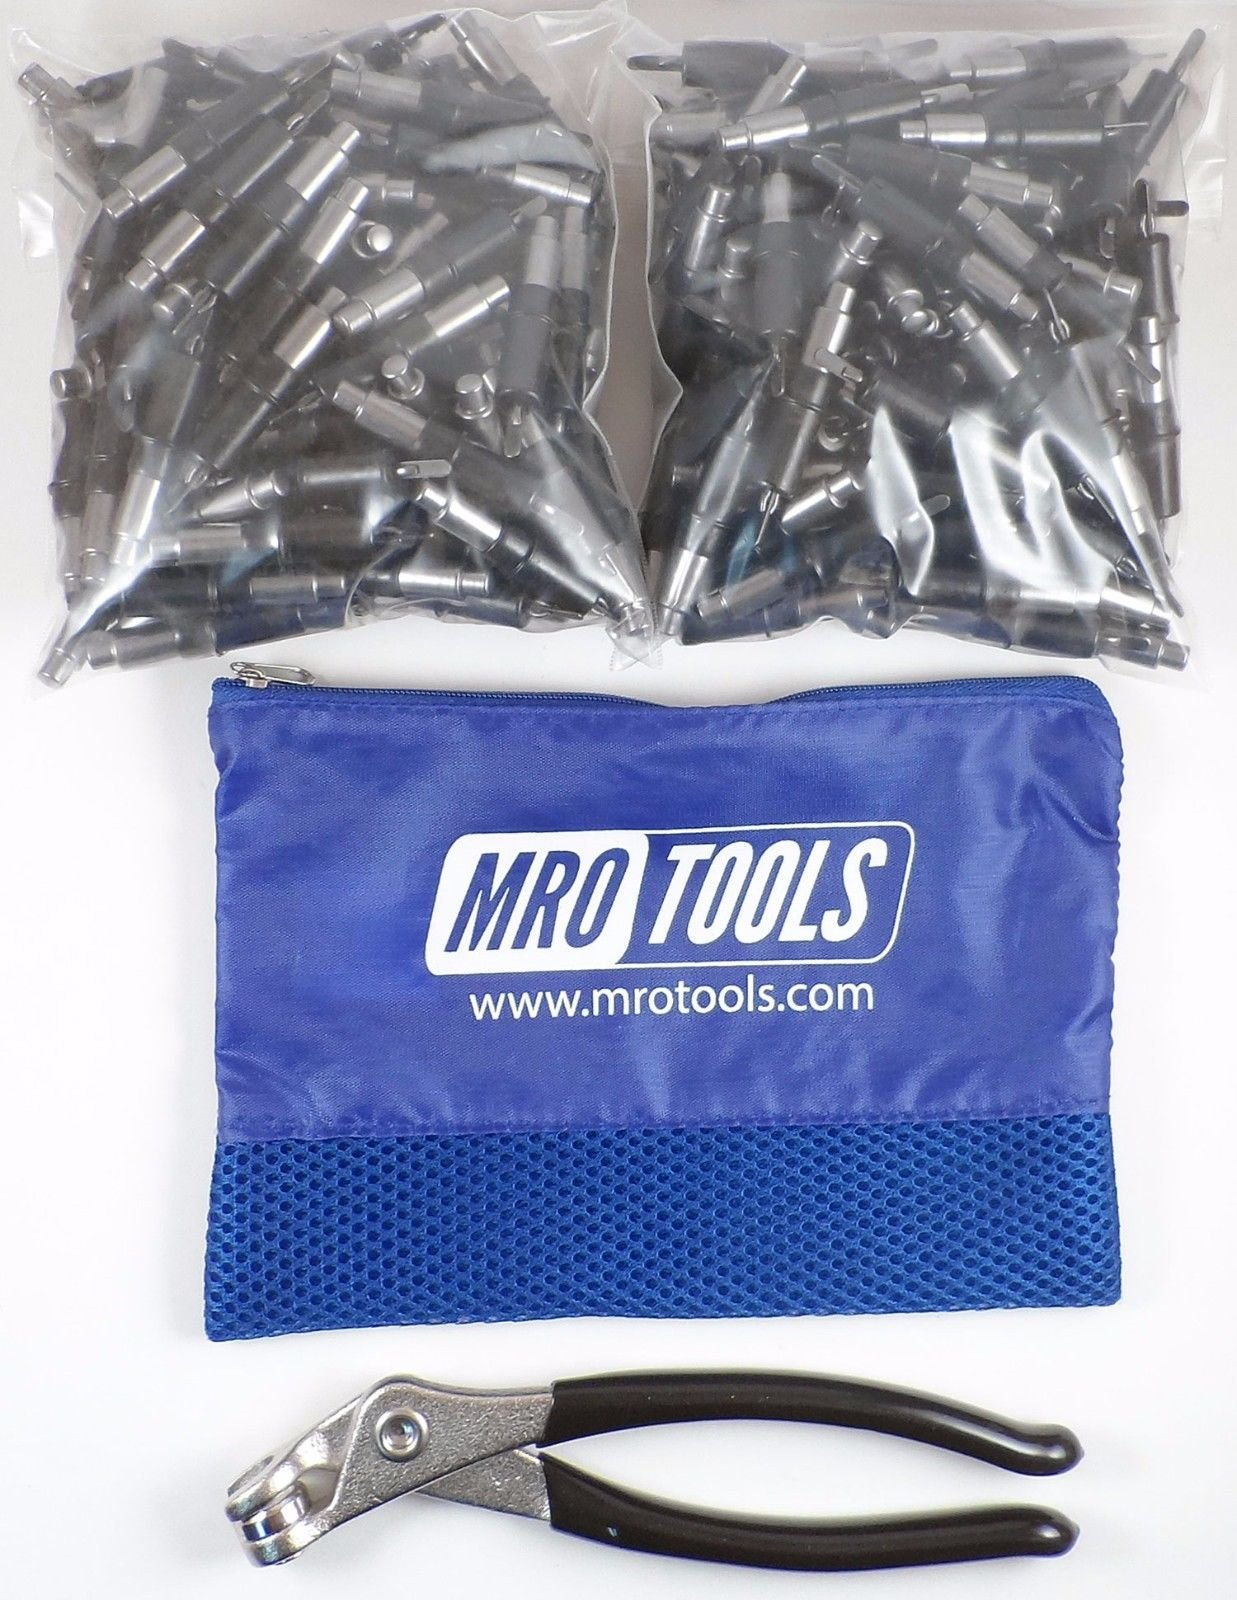 300 5/32 Cleco Sheet Metal Fasteners + Cleco Pliers w/Carry Bag (K1S300-5/32)